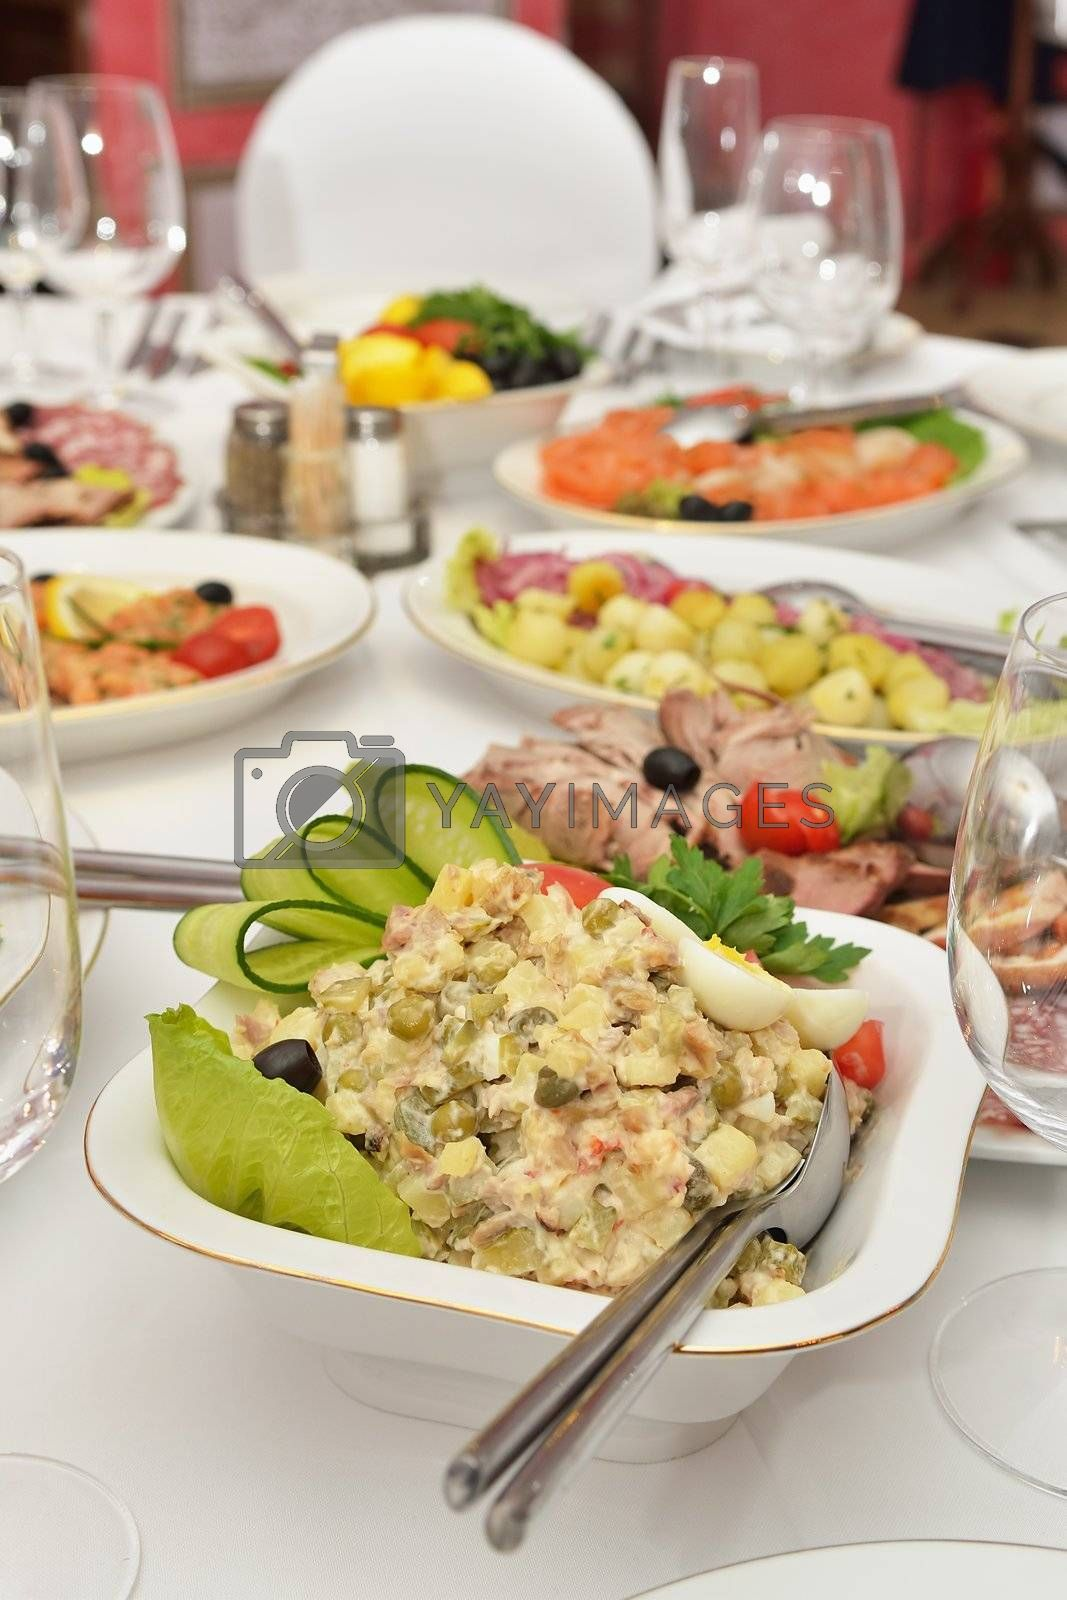 Salad on the served table. Snacks, wine glasses and restaurant serving.